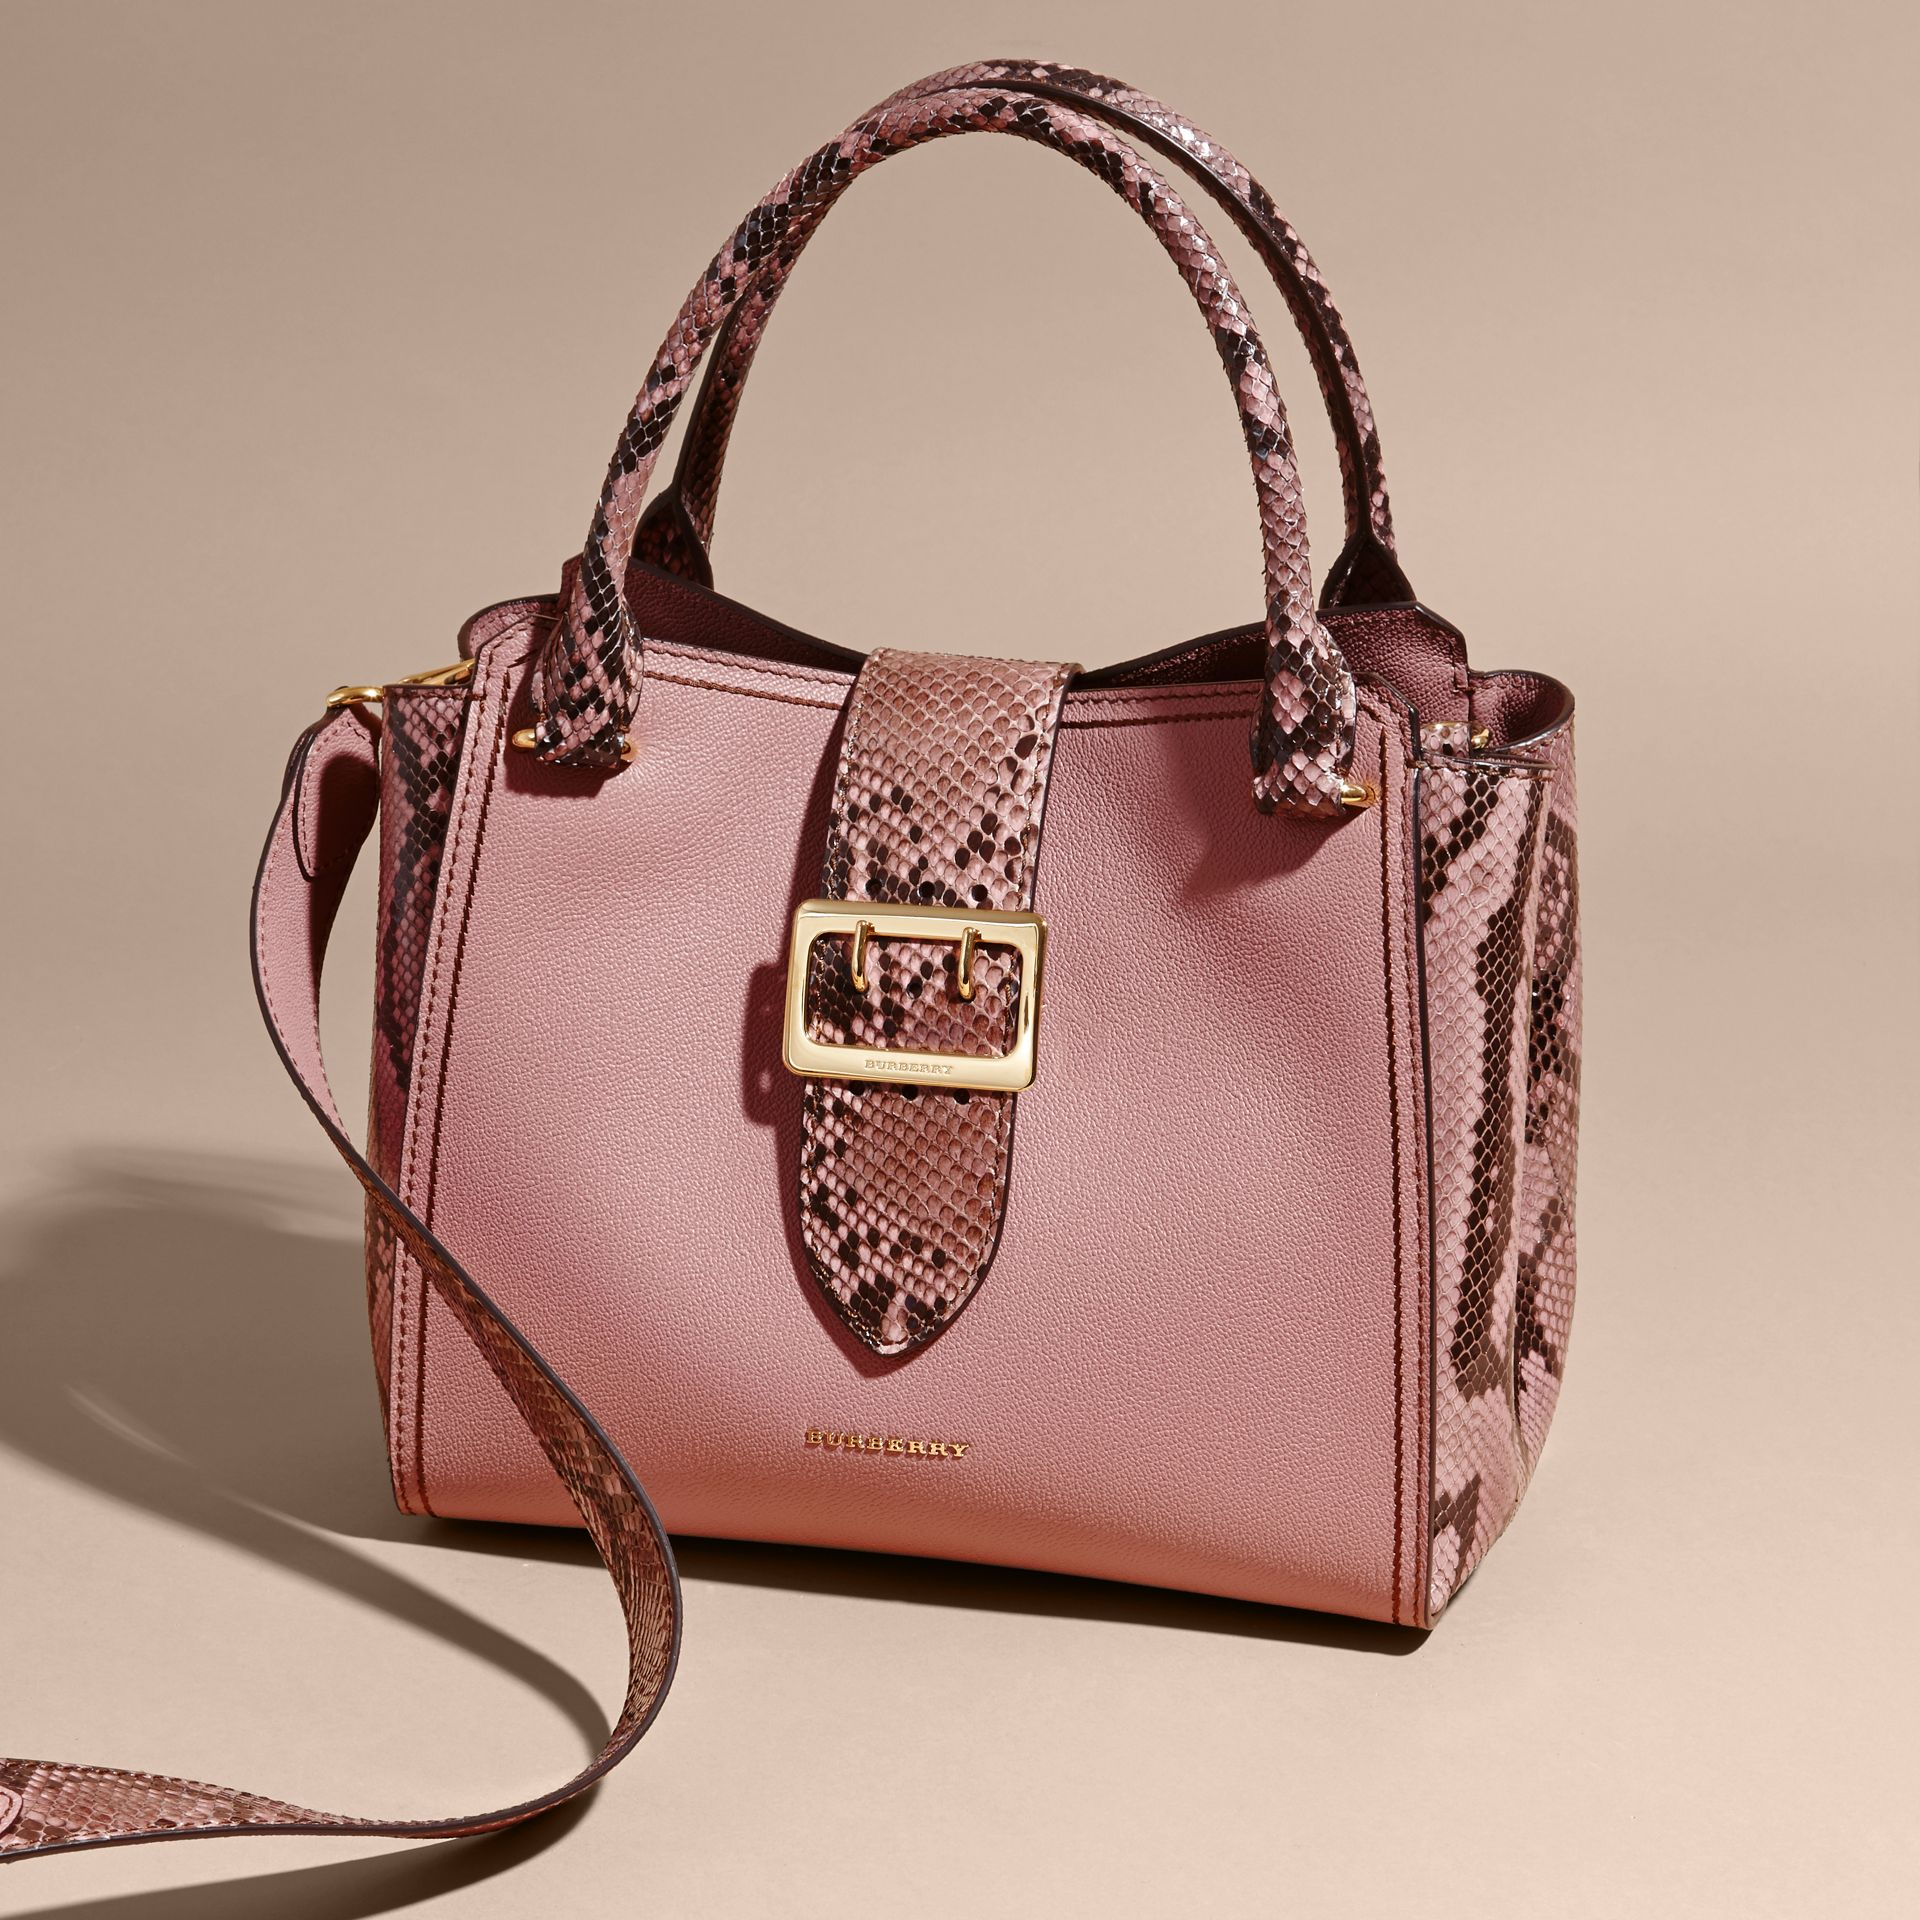 Dusty pink The Medium Buckle Tote in Grainy Leather and Python - gallery image 8